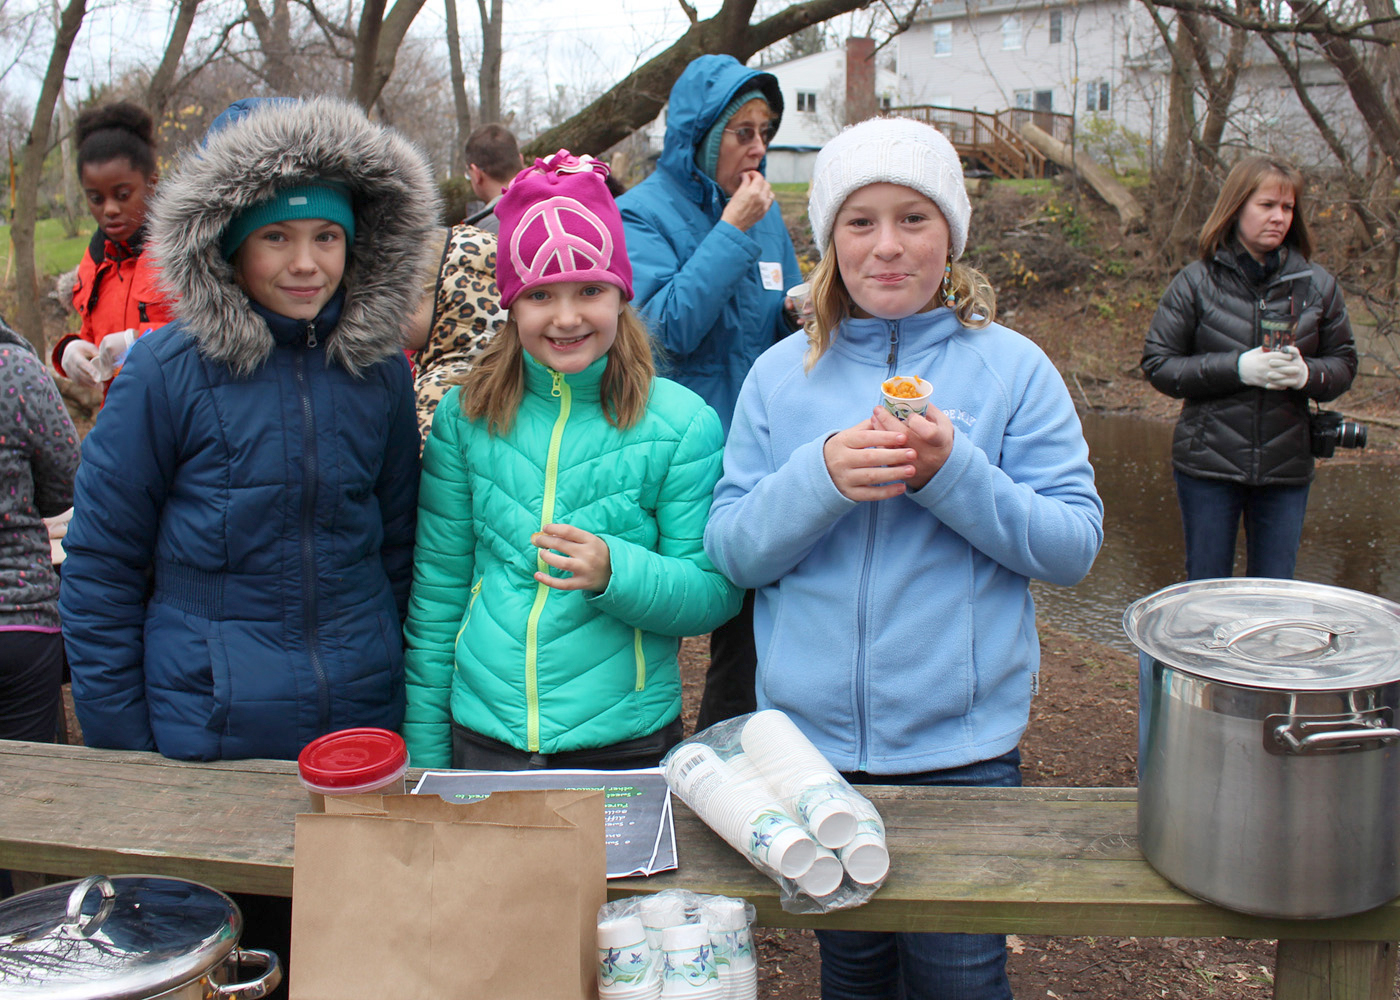 Quest Elementary School students (l-r) Ashley Simons, Autumn Sample and Isabelle Anderson talk to fellow students and visitors about the importance of sweet potatoes to both the Pilgrims and Indians. They also provided homemade samples. Provided photo